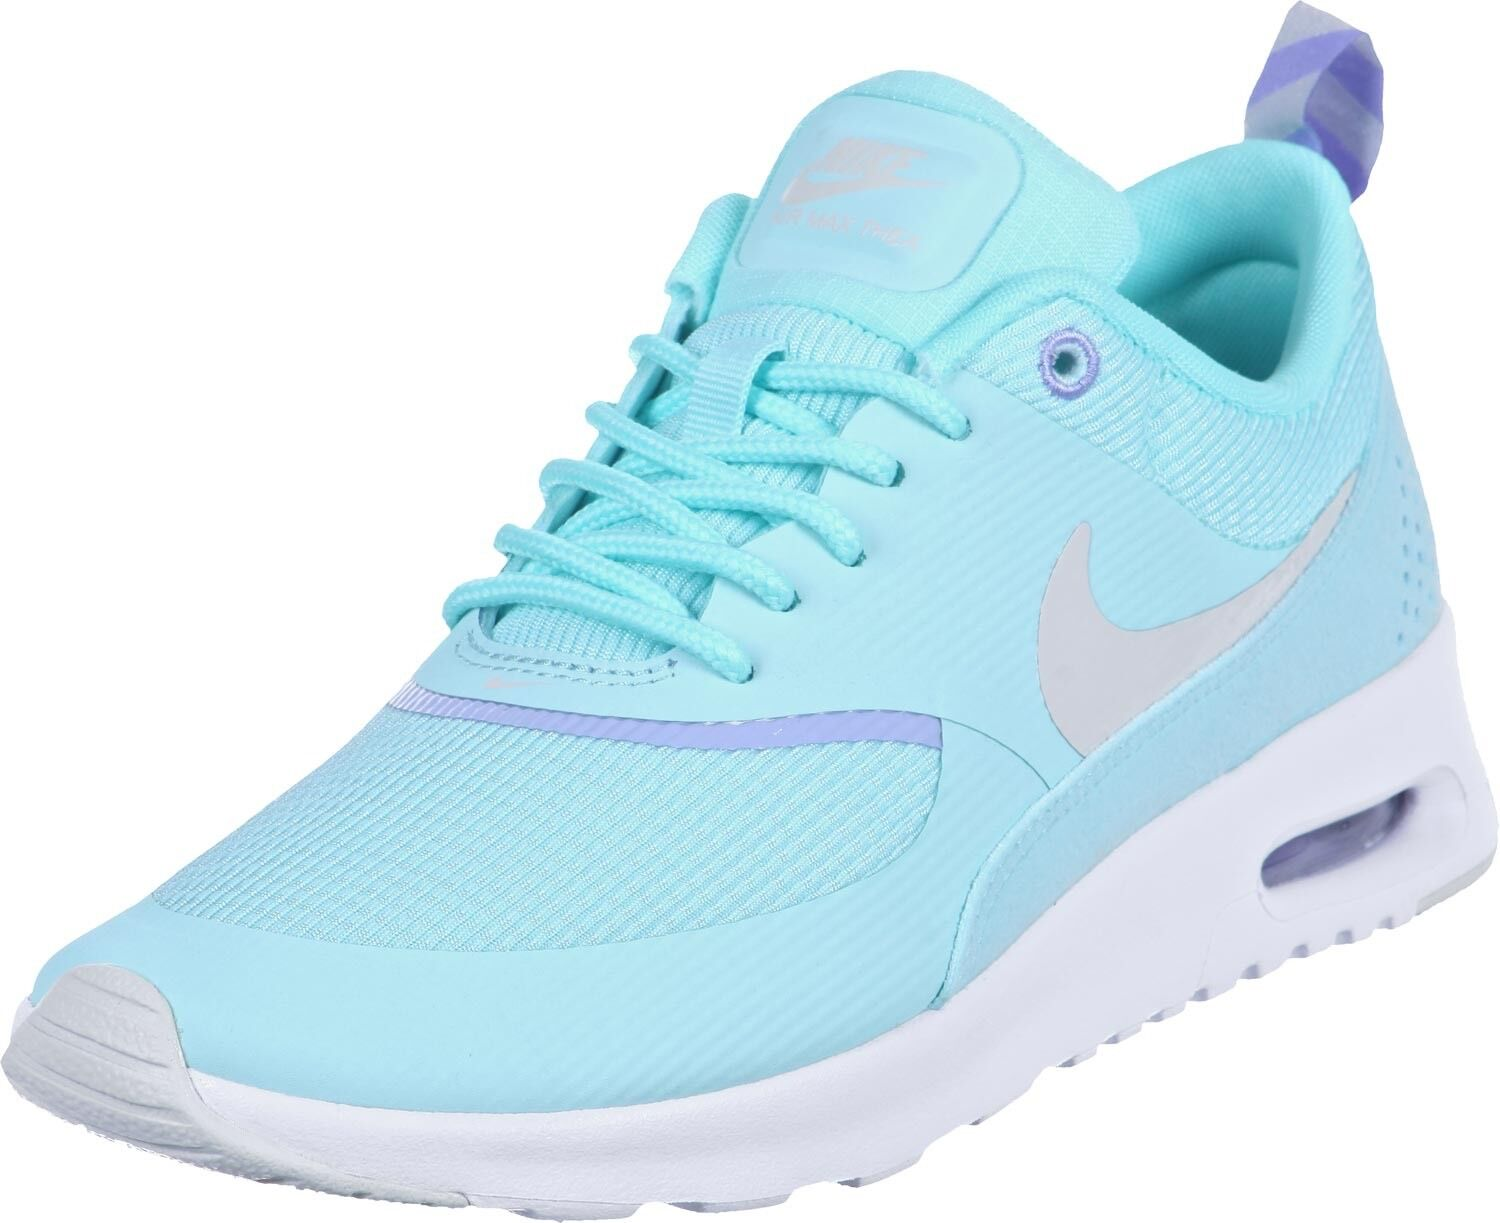 Nike Air Max Thea Women's Running Shoes Glacier Ice MINT 599409402 Size 11 US